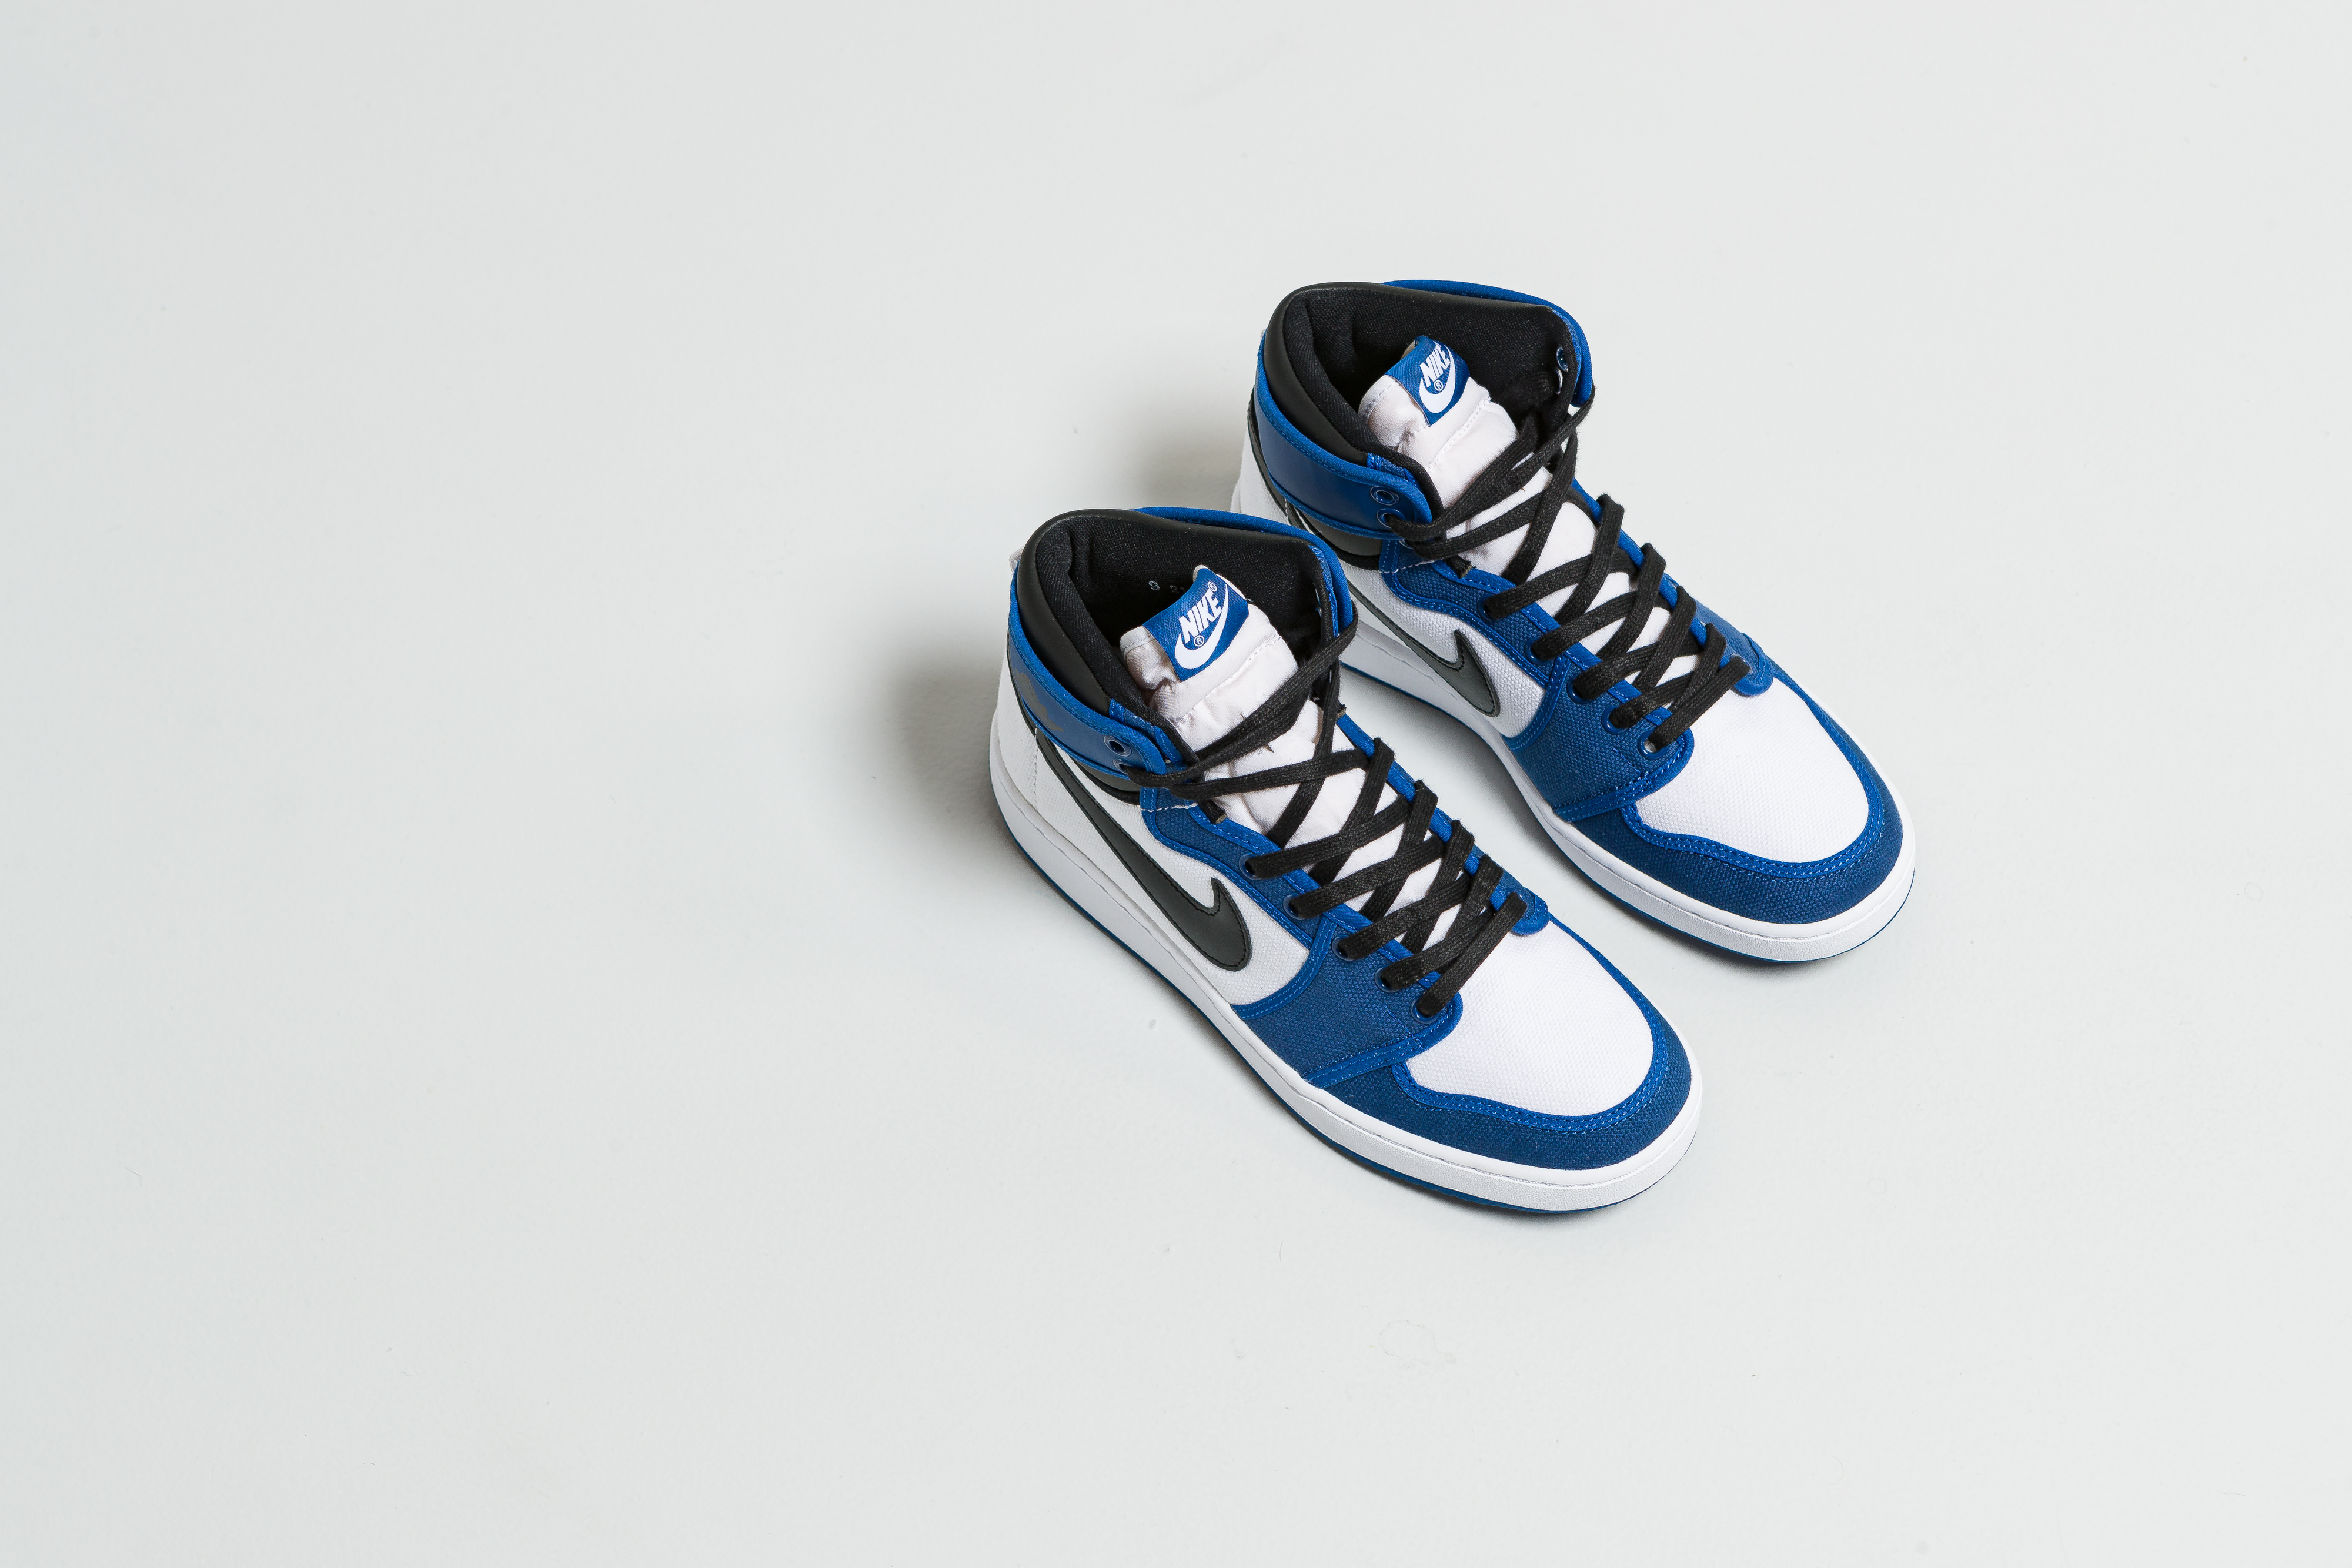 Up There Launches - Nike Air Jordan 1 KO 'Storm Blue'